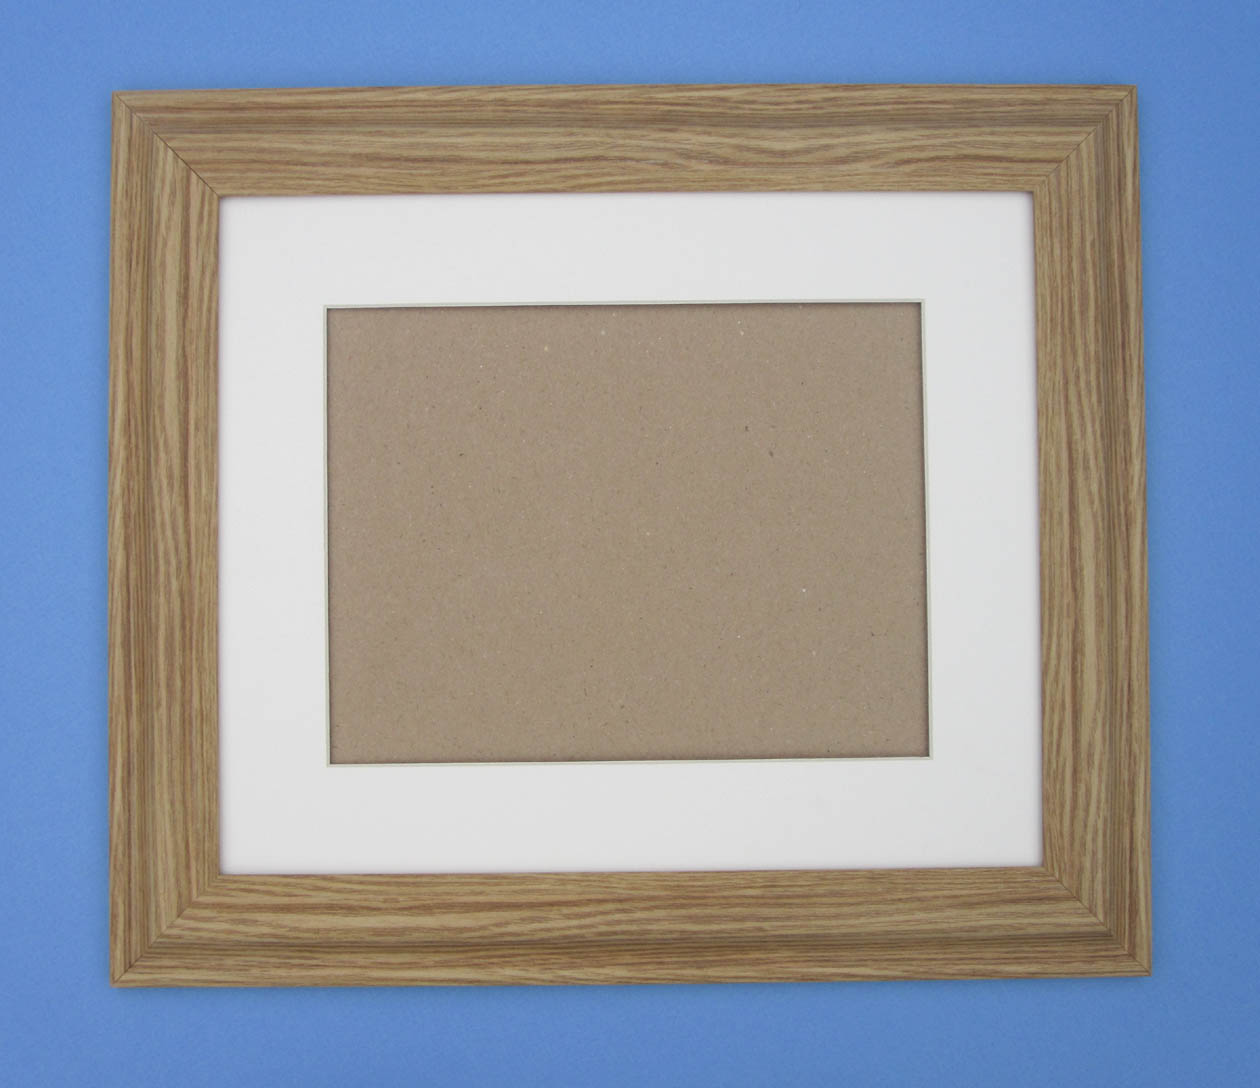 18X12 READY MADE PICTURE FRAMES